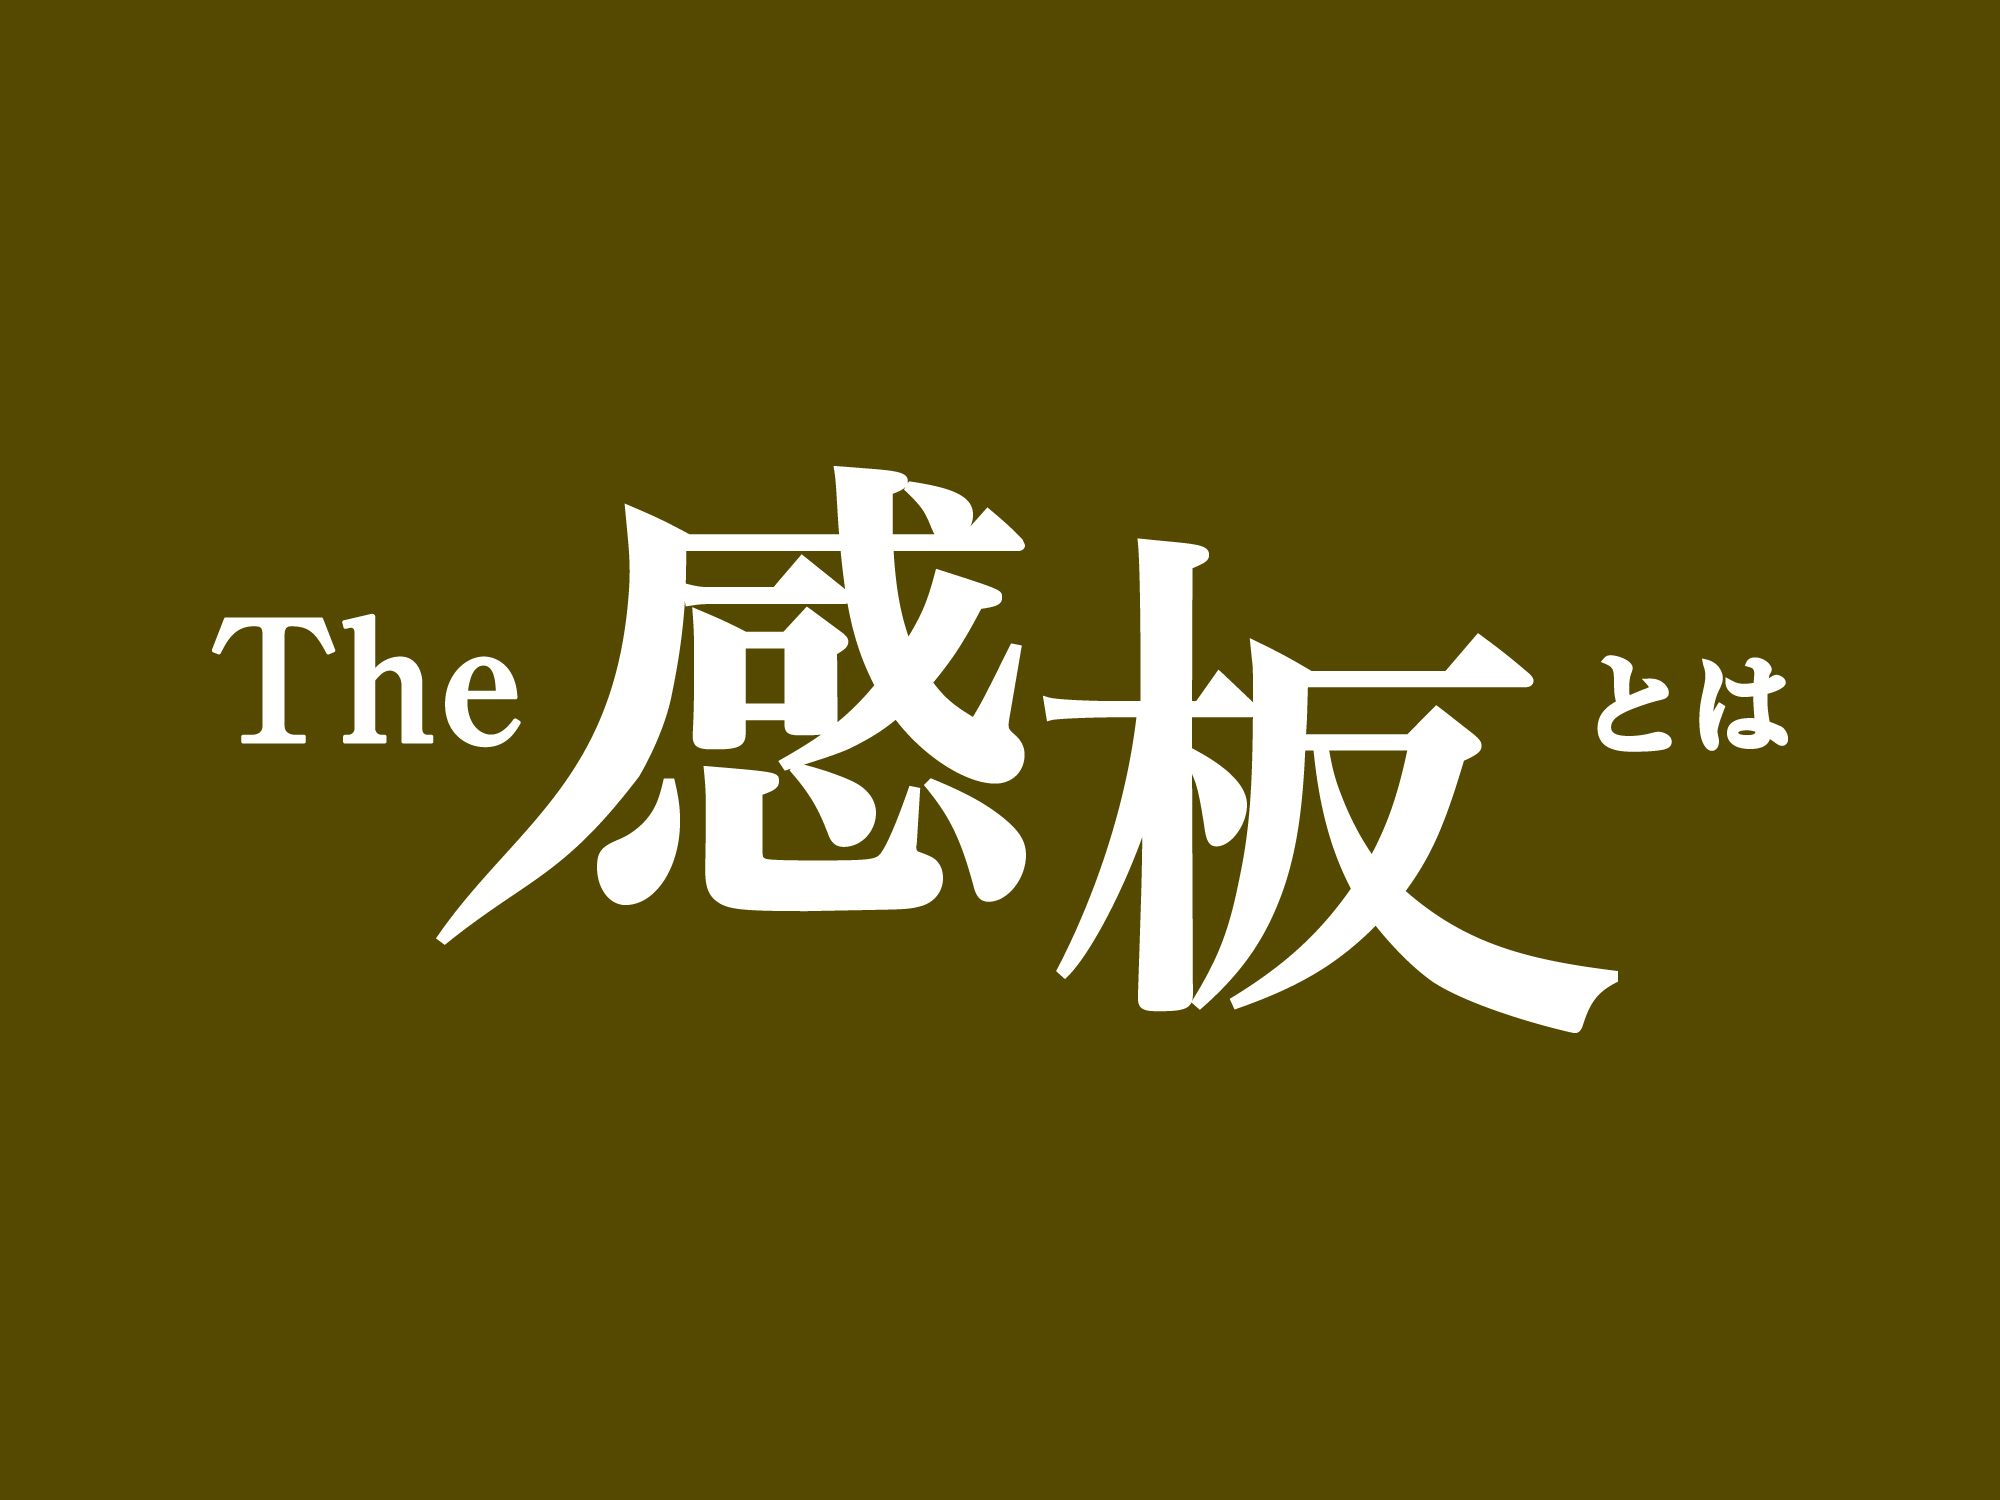 The 感板とは